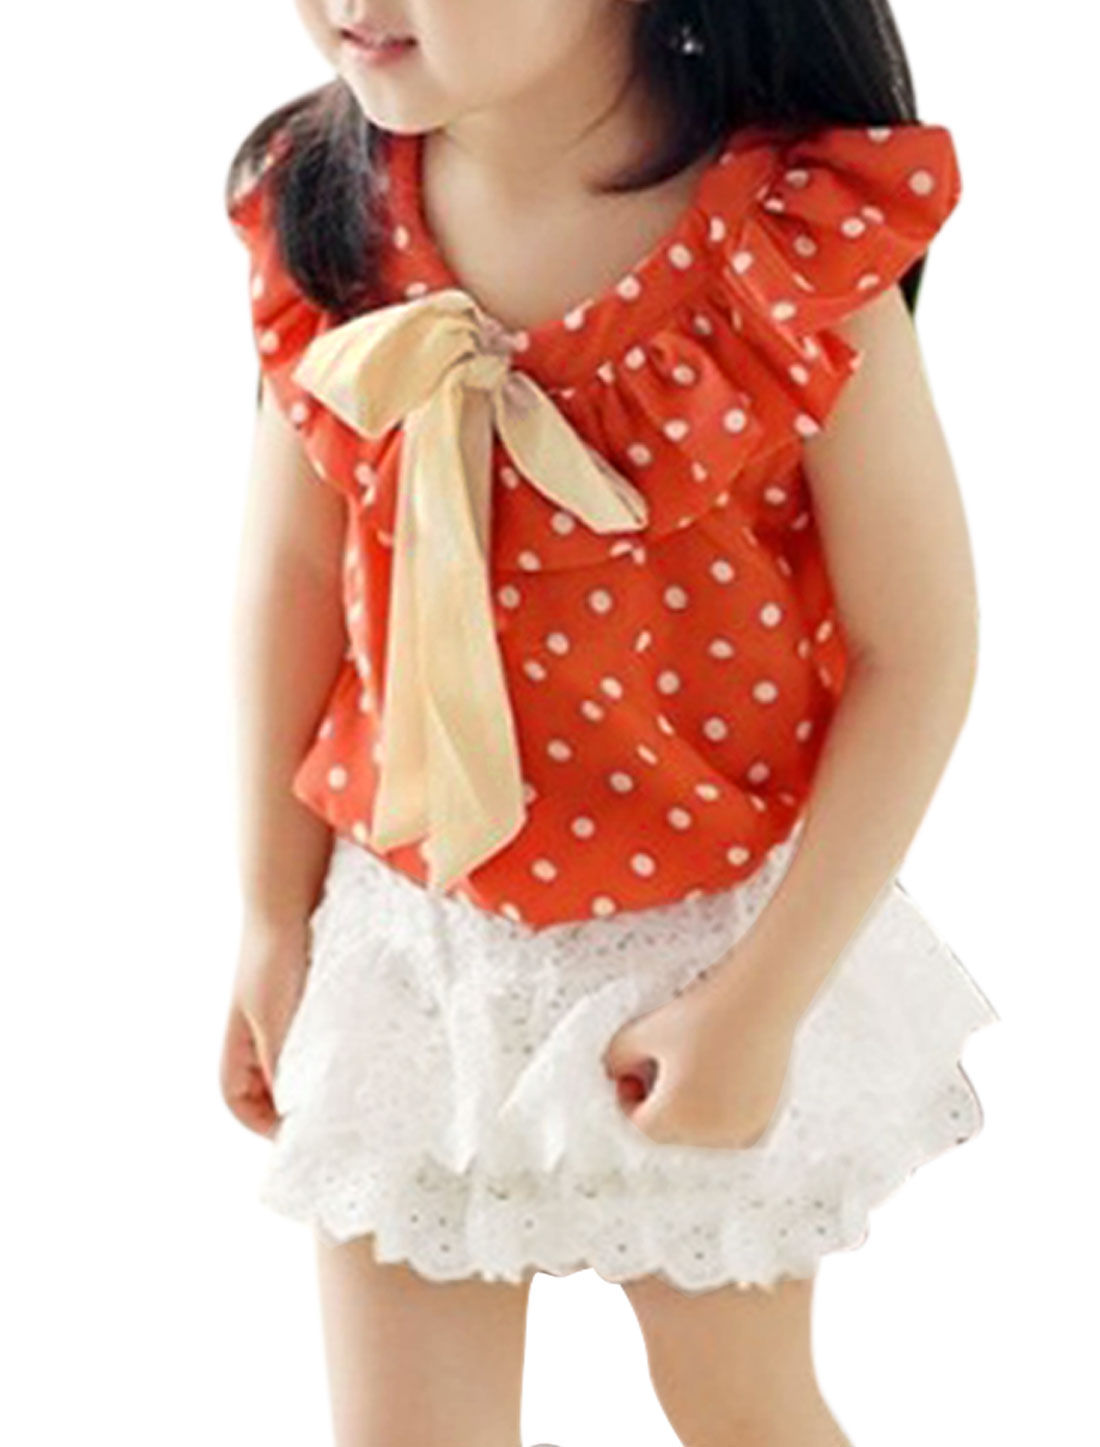 Child Girls Cute Sleeve Dots Pattern Stretchy Tiered Suit Orange White US Size 8